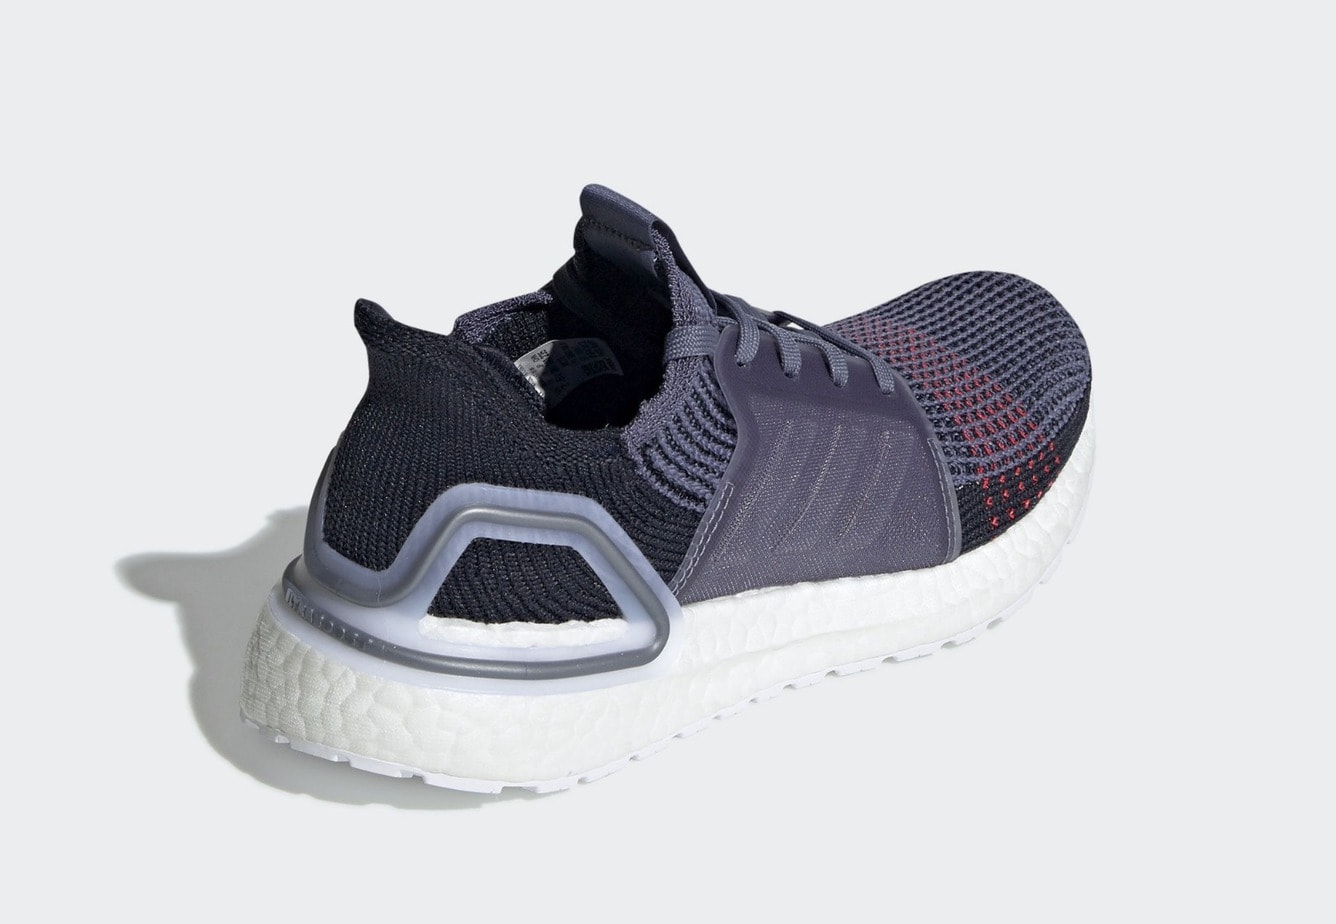 The adidas Ultra Boost 2019 Drops in Two New Women s Colorways Next Month 1a1af913af